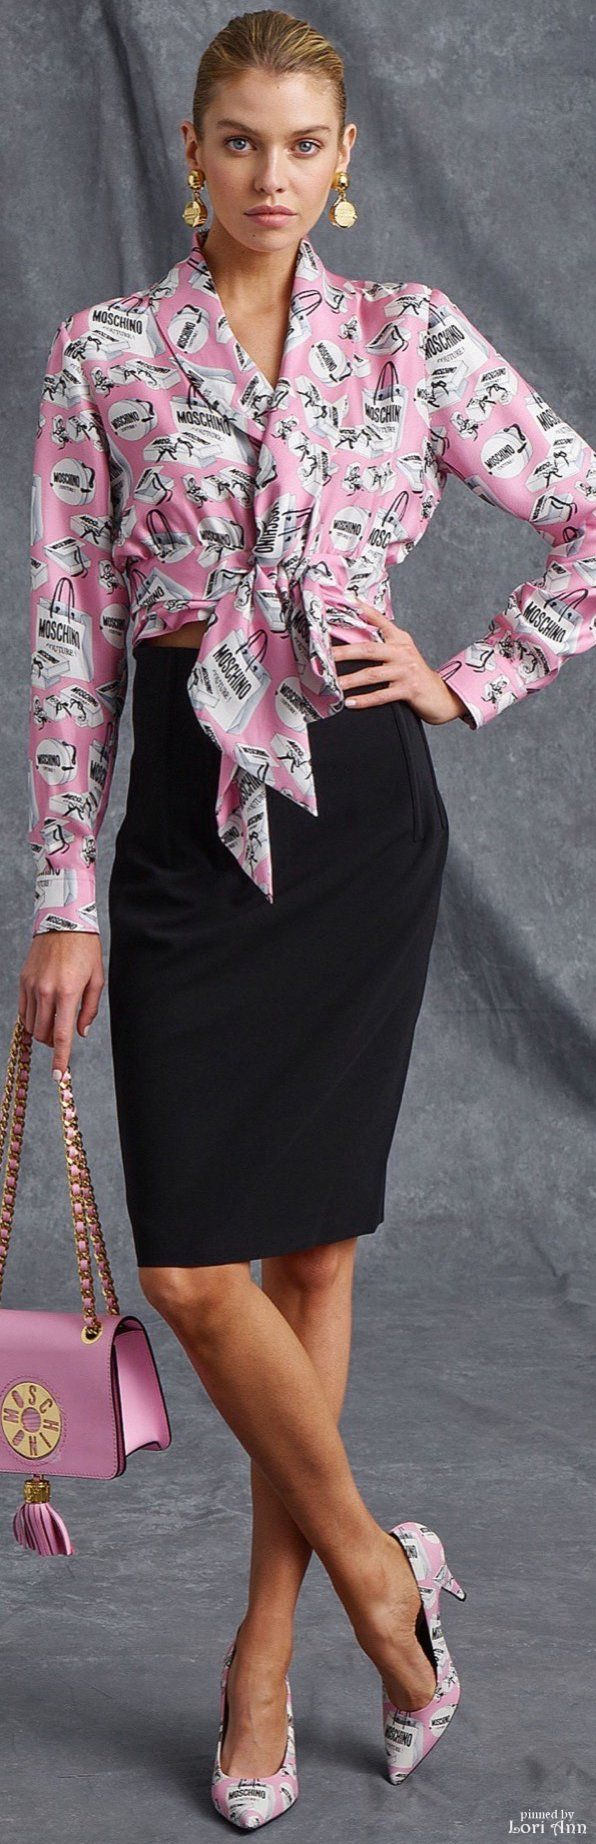 Moschino Resort 2016. Purple pink top, shoulder bag and heels, black pencil skirt. women fashion outfit clothing style apparel @roressclothes closet ideas